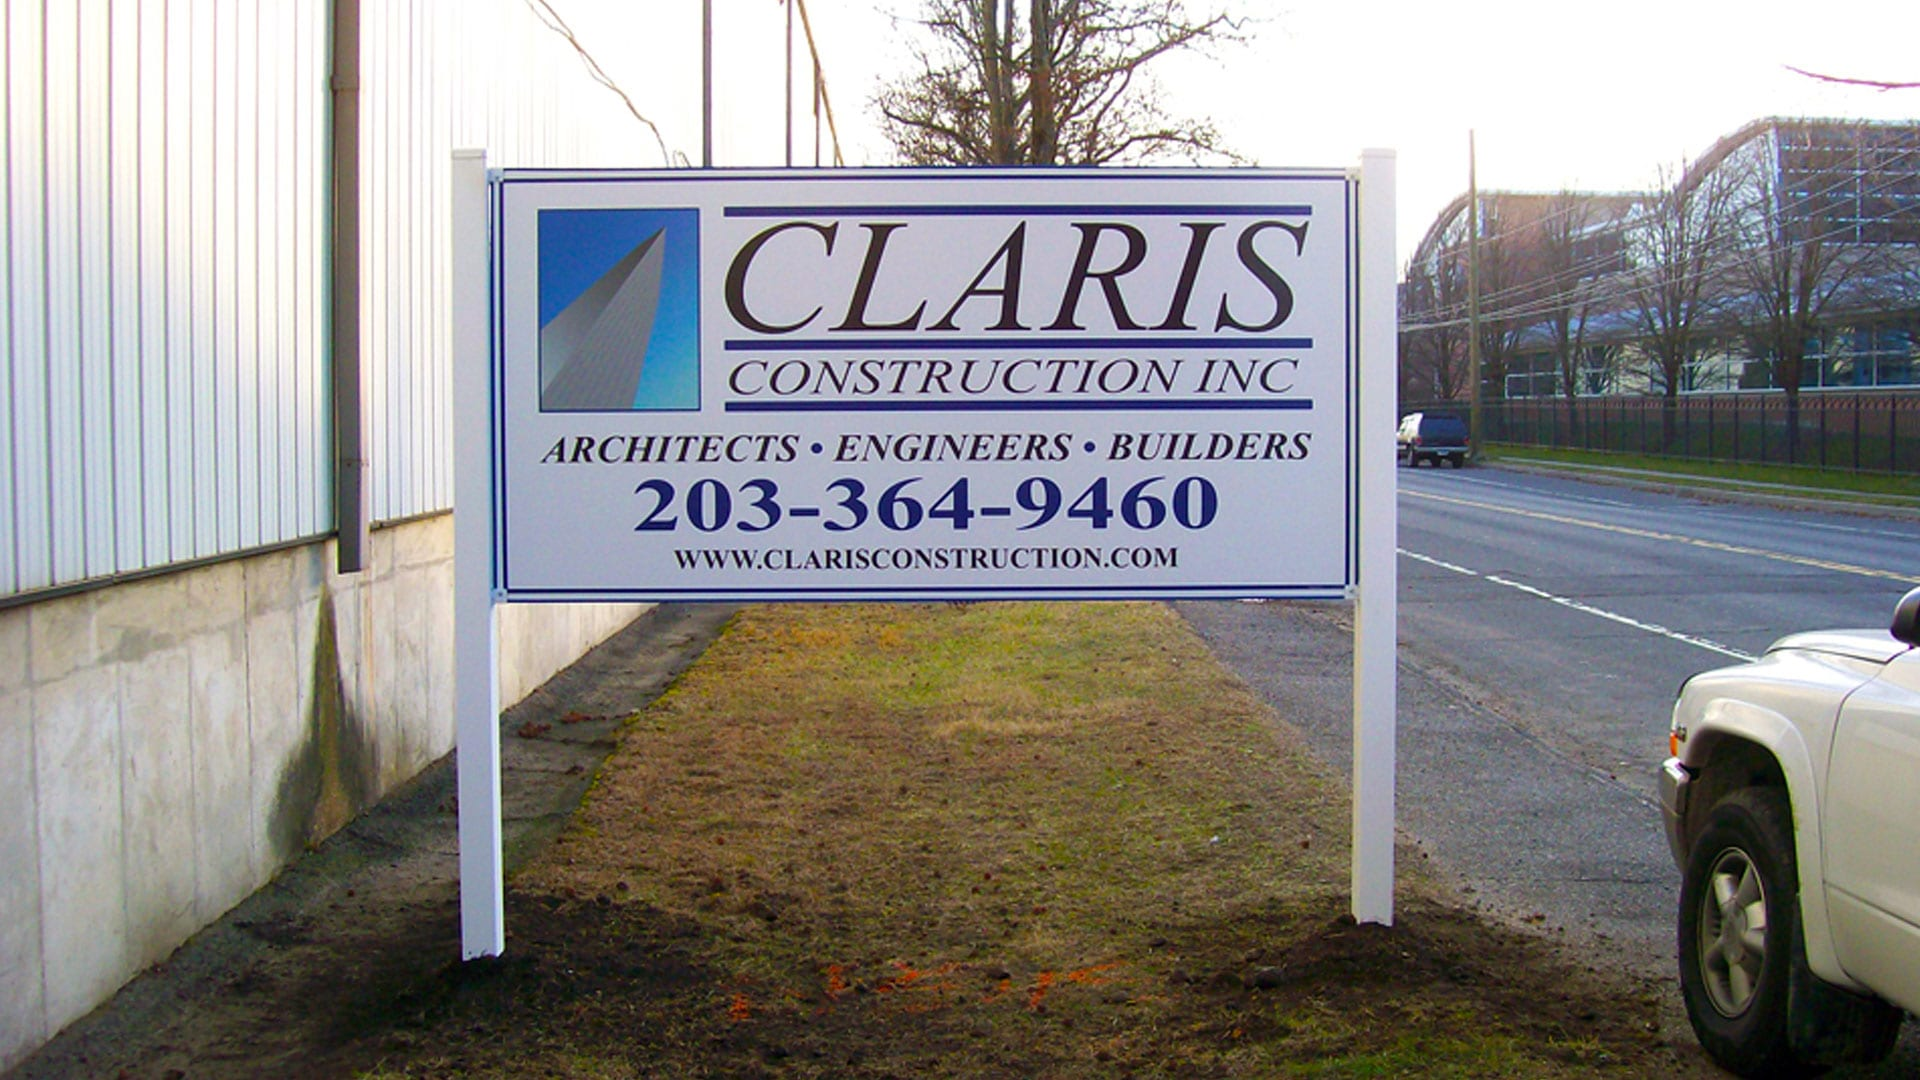 Site sign for Claris Construction